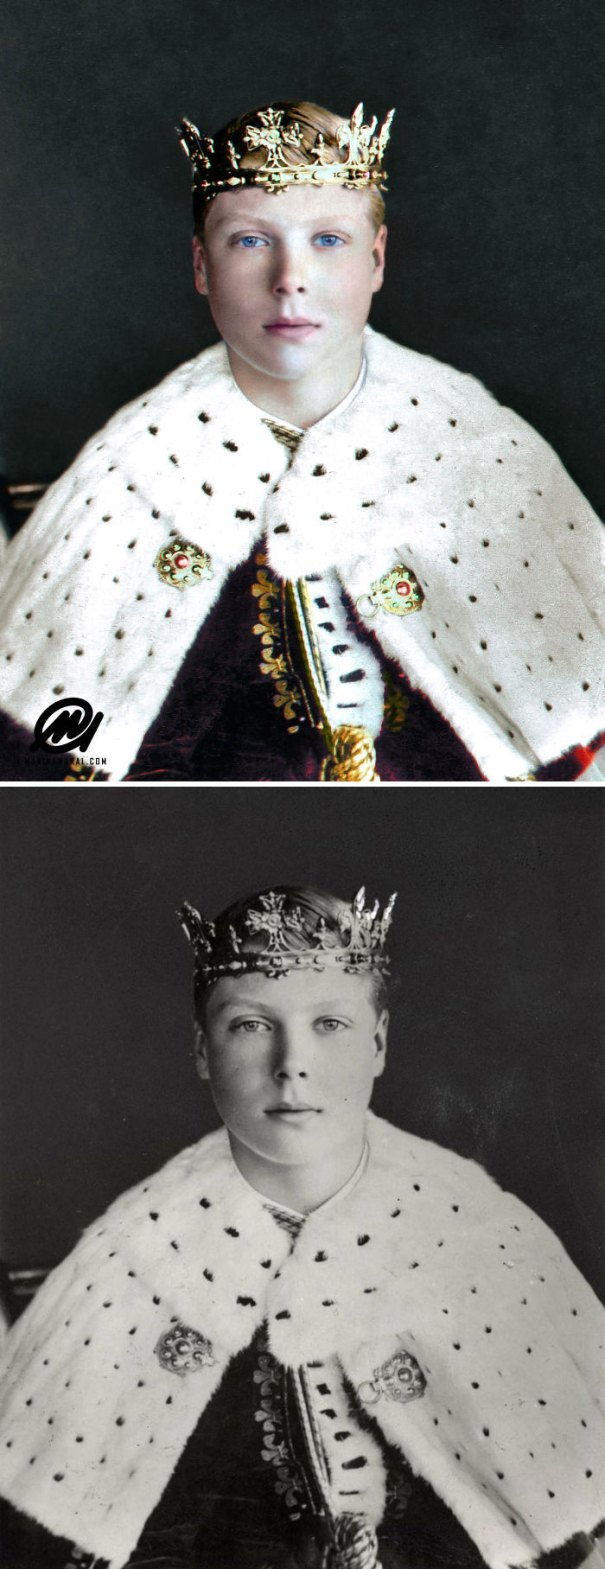 5b6d3b92cbf3e-colorized-historic-photos-marina-amaral-87-5b6c23bb9c98c__700 This Artist Colorizes Old Black & White Photos, And They Will Change The Way People Imagine History Photography Random